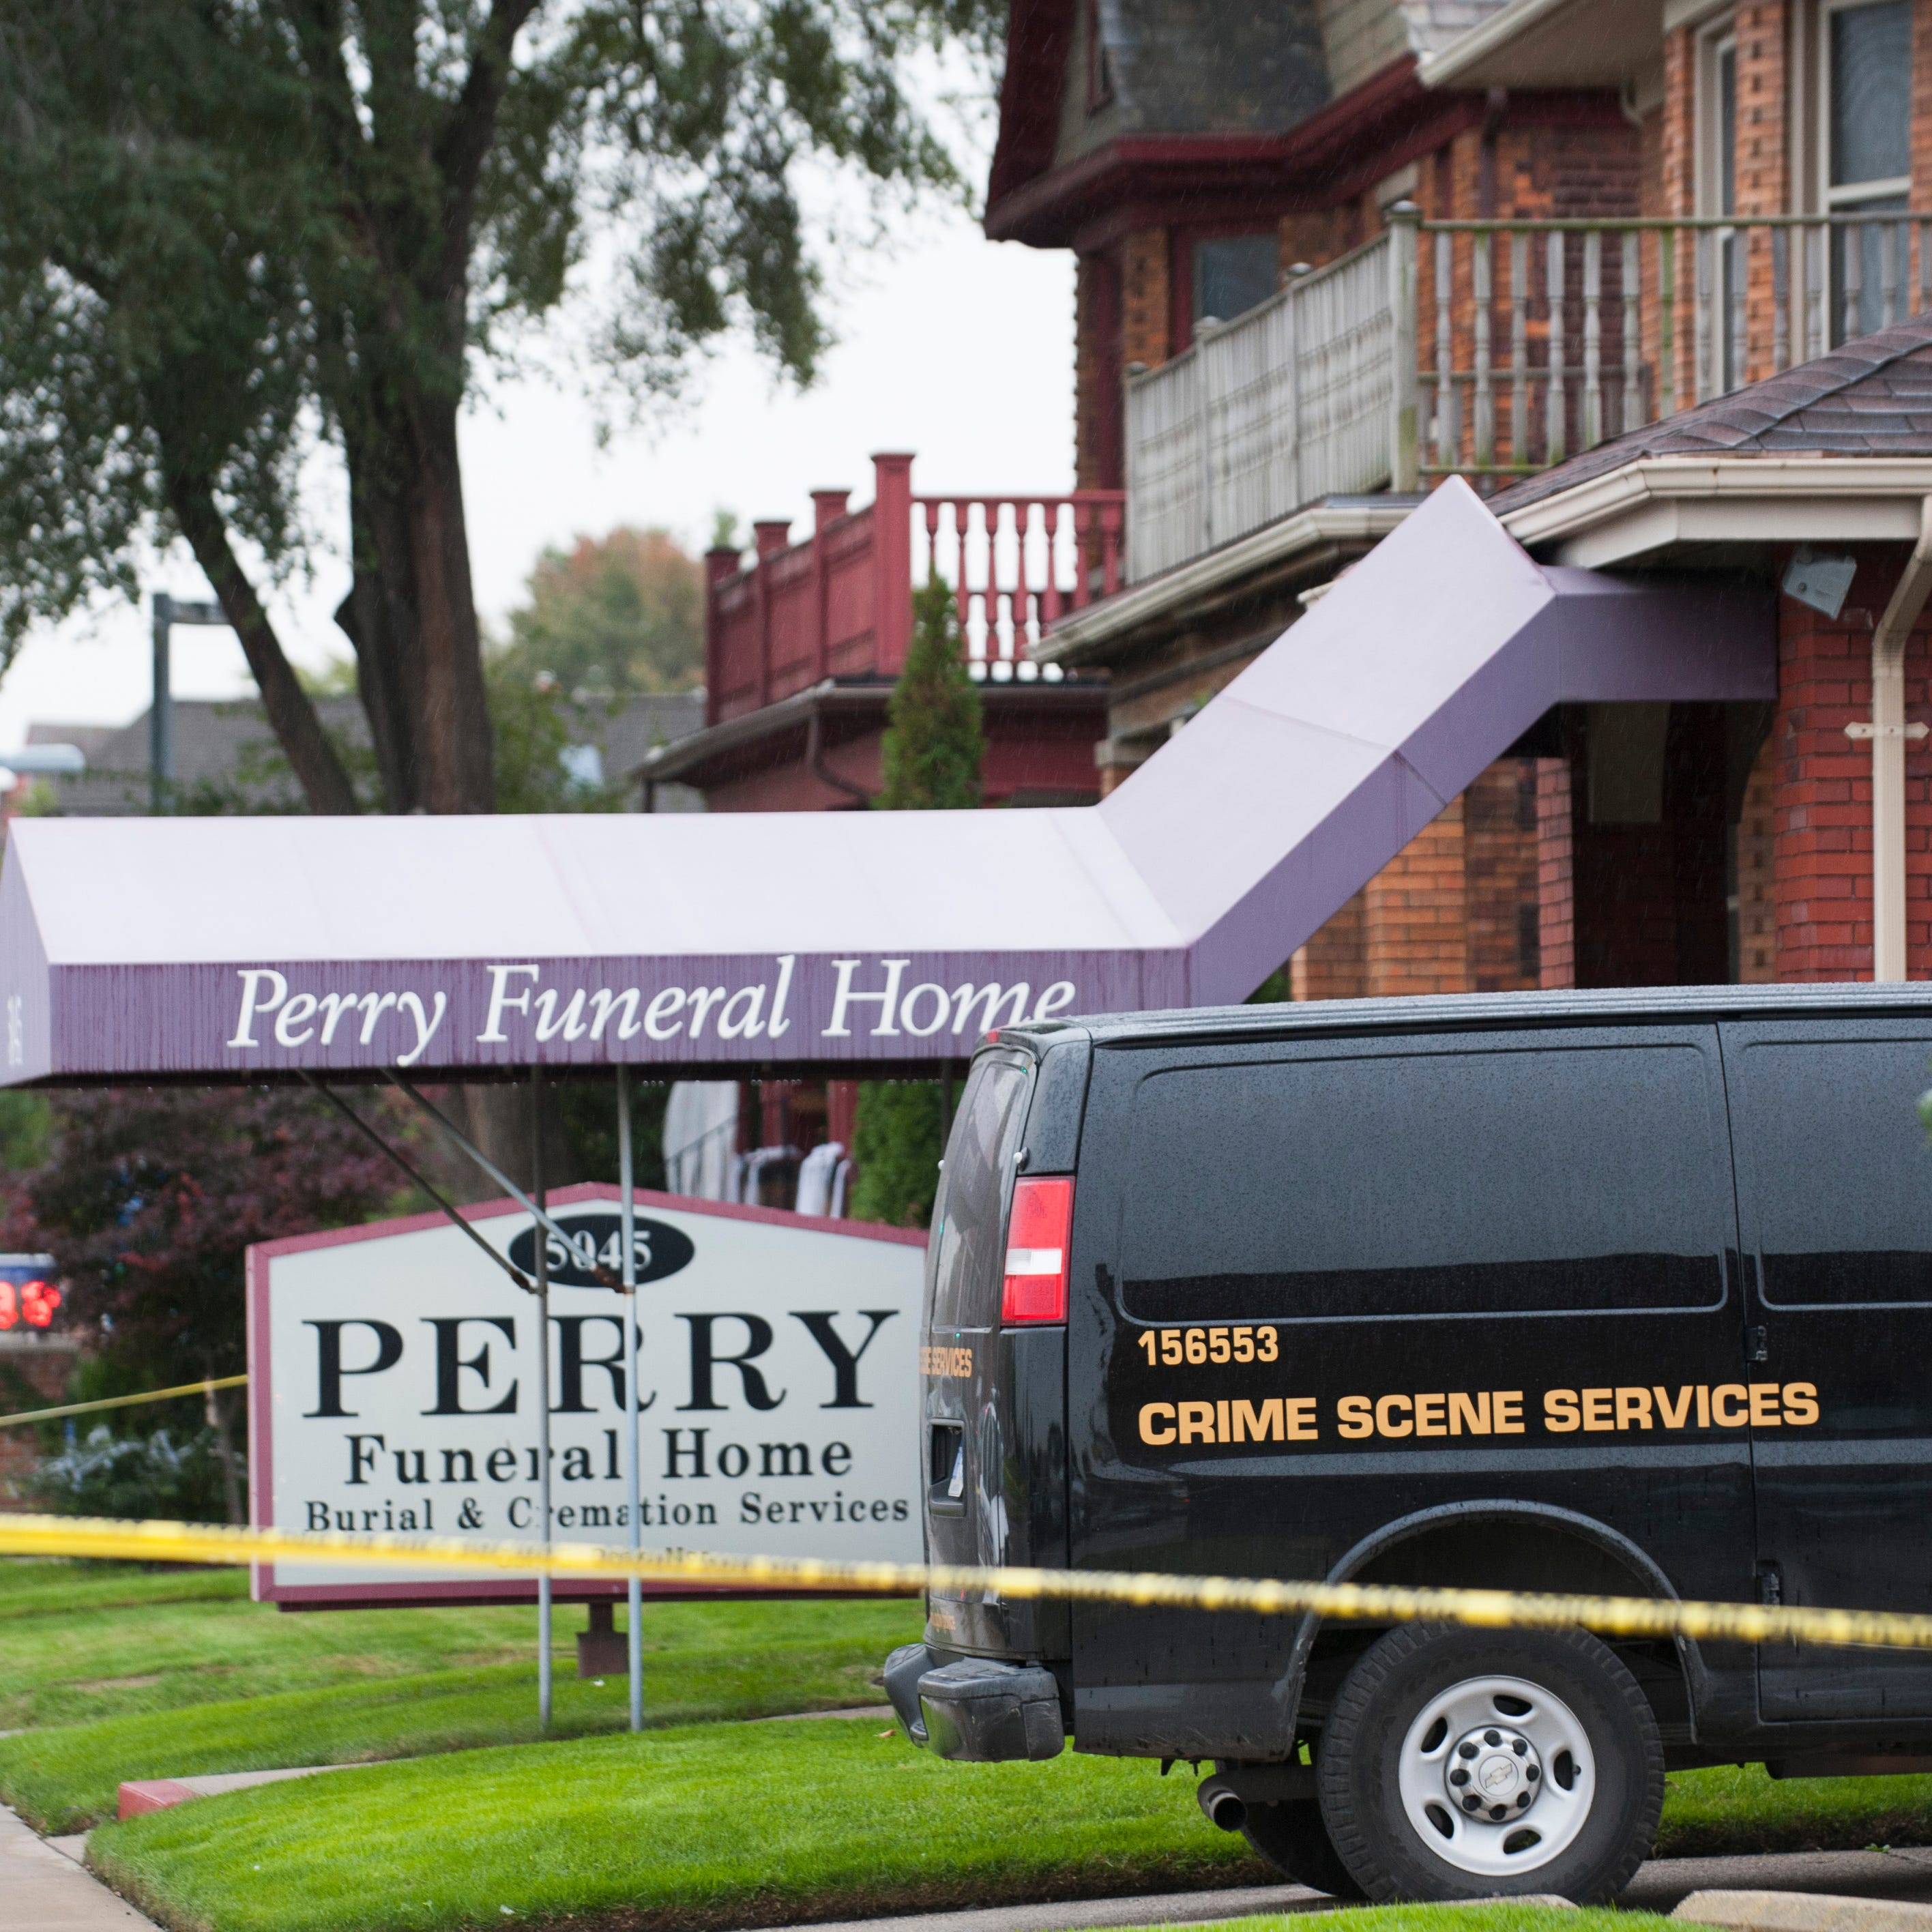 Holes in mortuary logs under scrutiny in funeral home probe